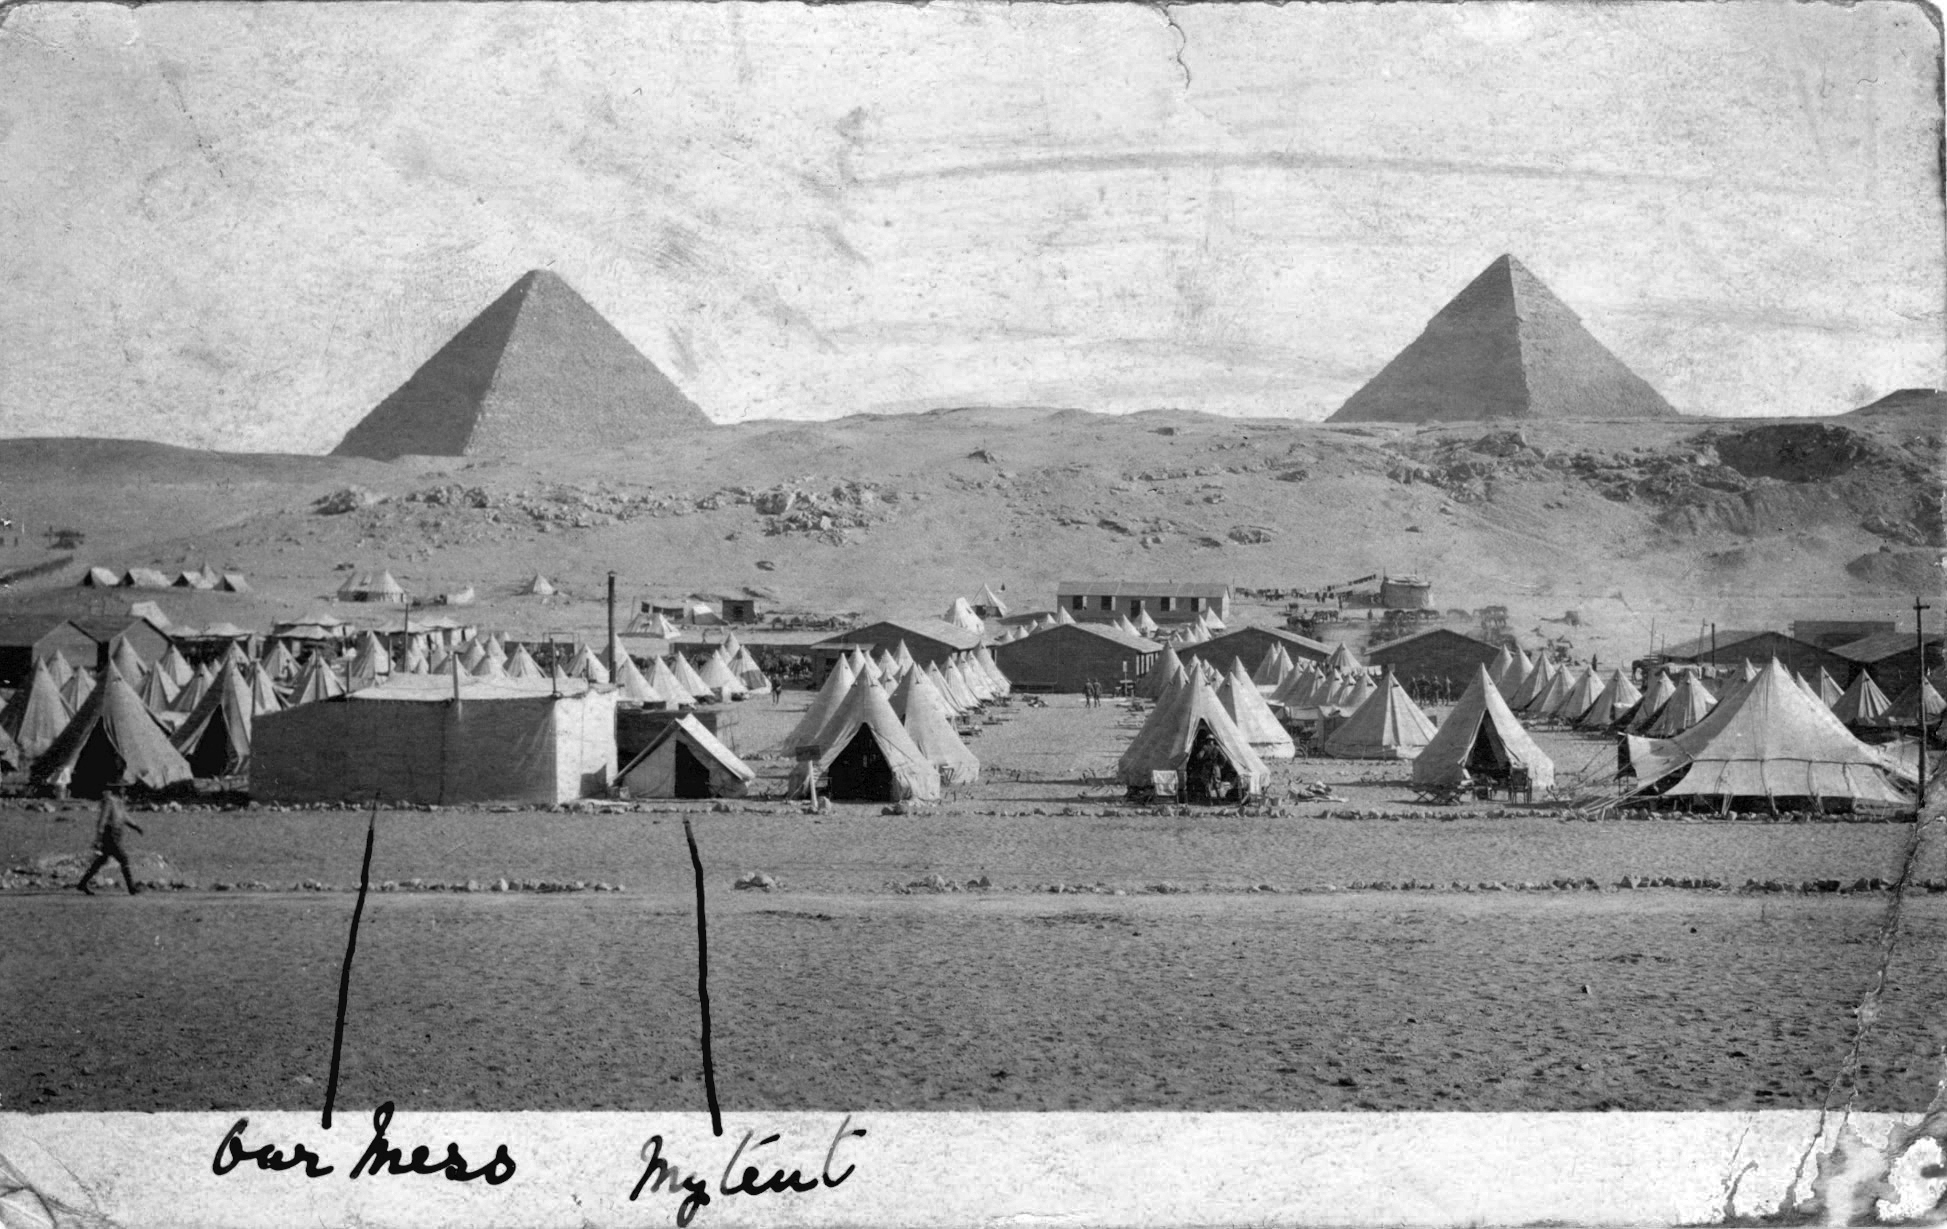 Captain Sydney Clement tent along side the 5th Batt Mess tent, Egypt early 1915